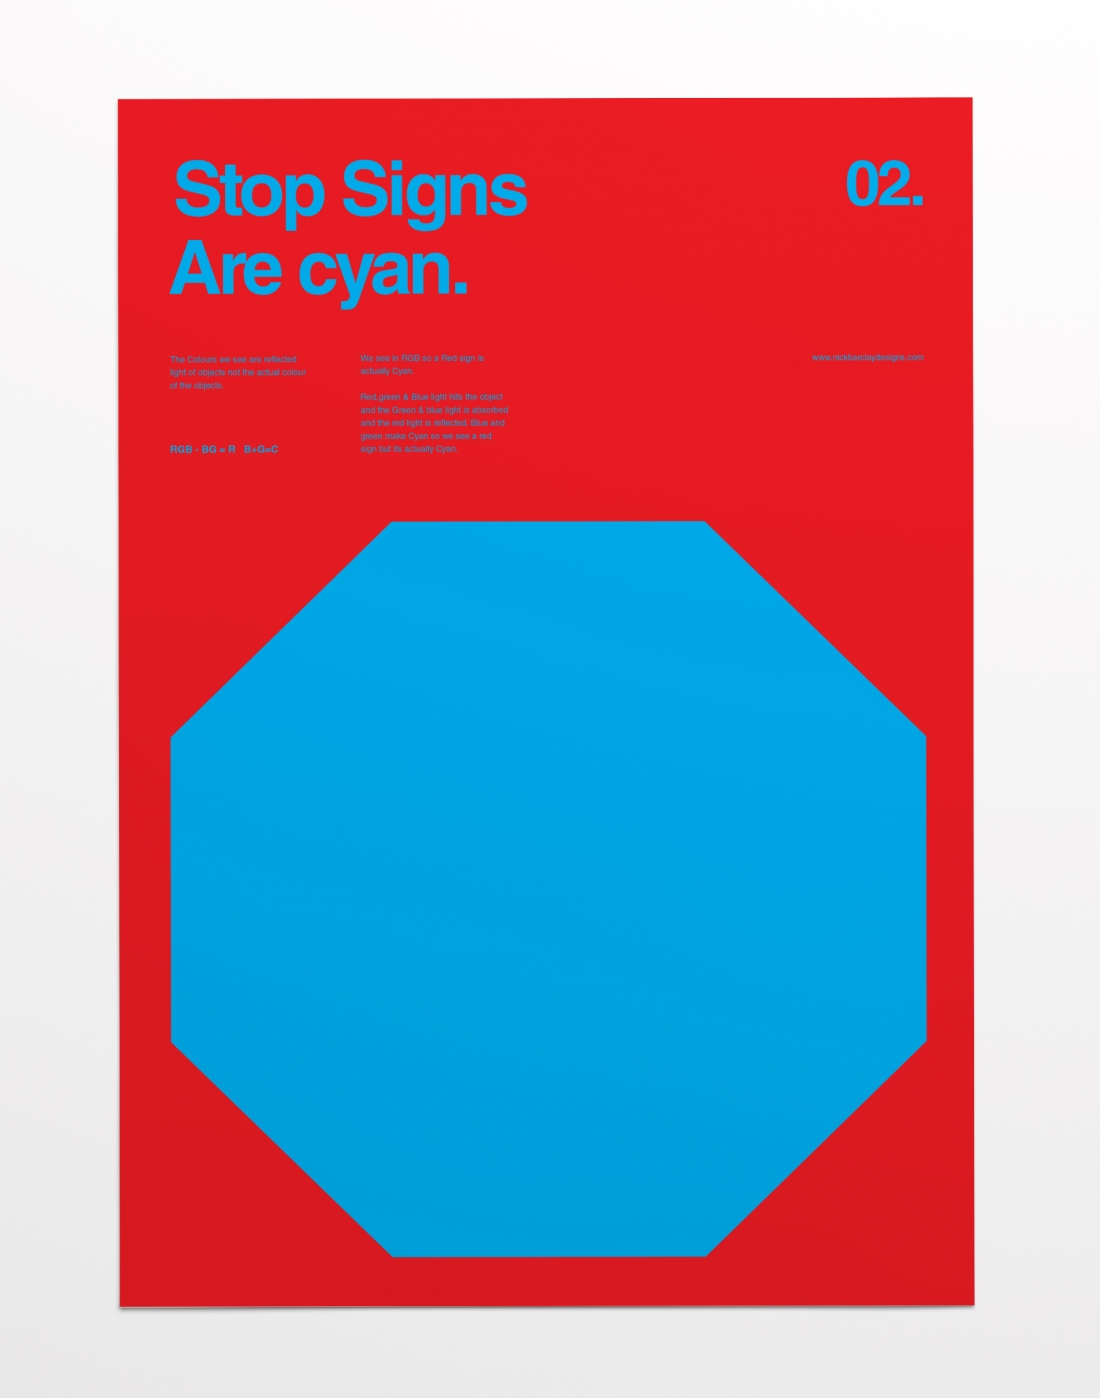 Nick Barclays Minimalist Series Explores RGB And Shows Us The - Minimal movie posters nick barclay